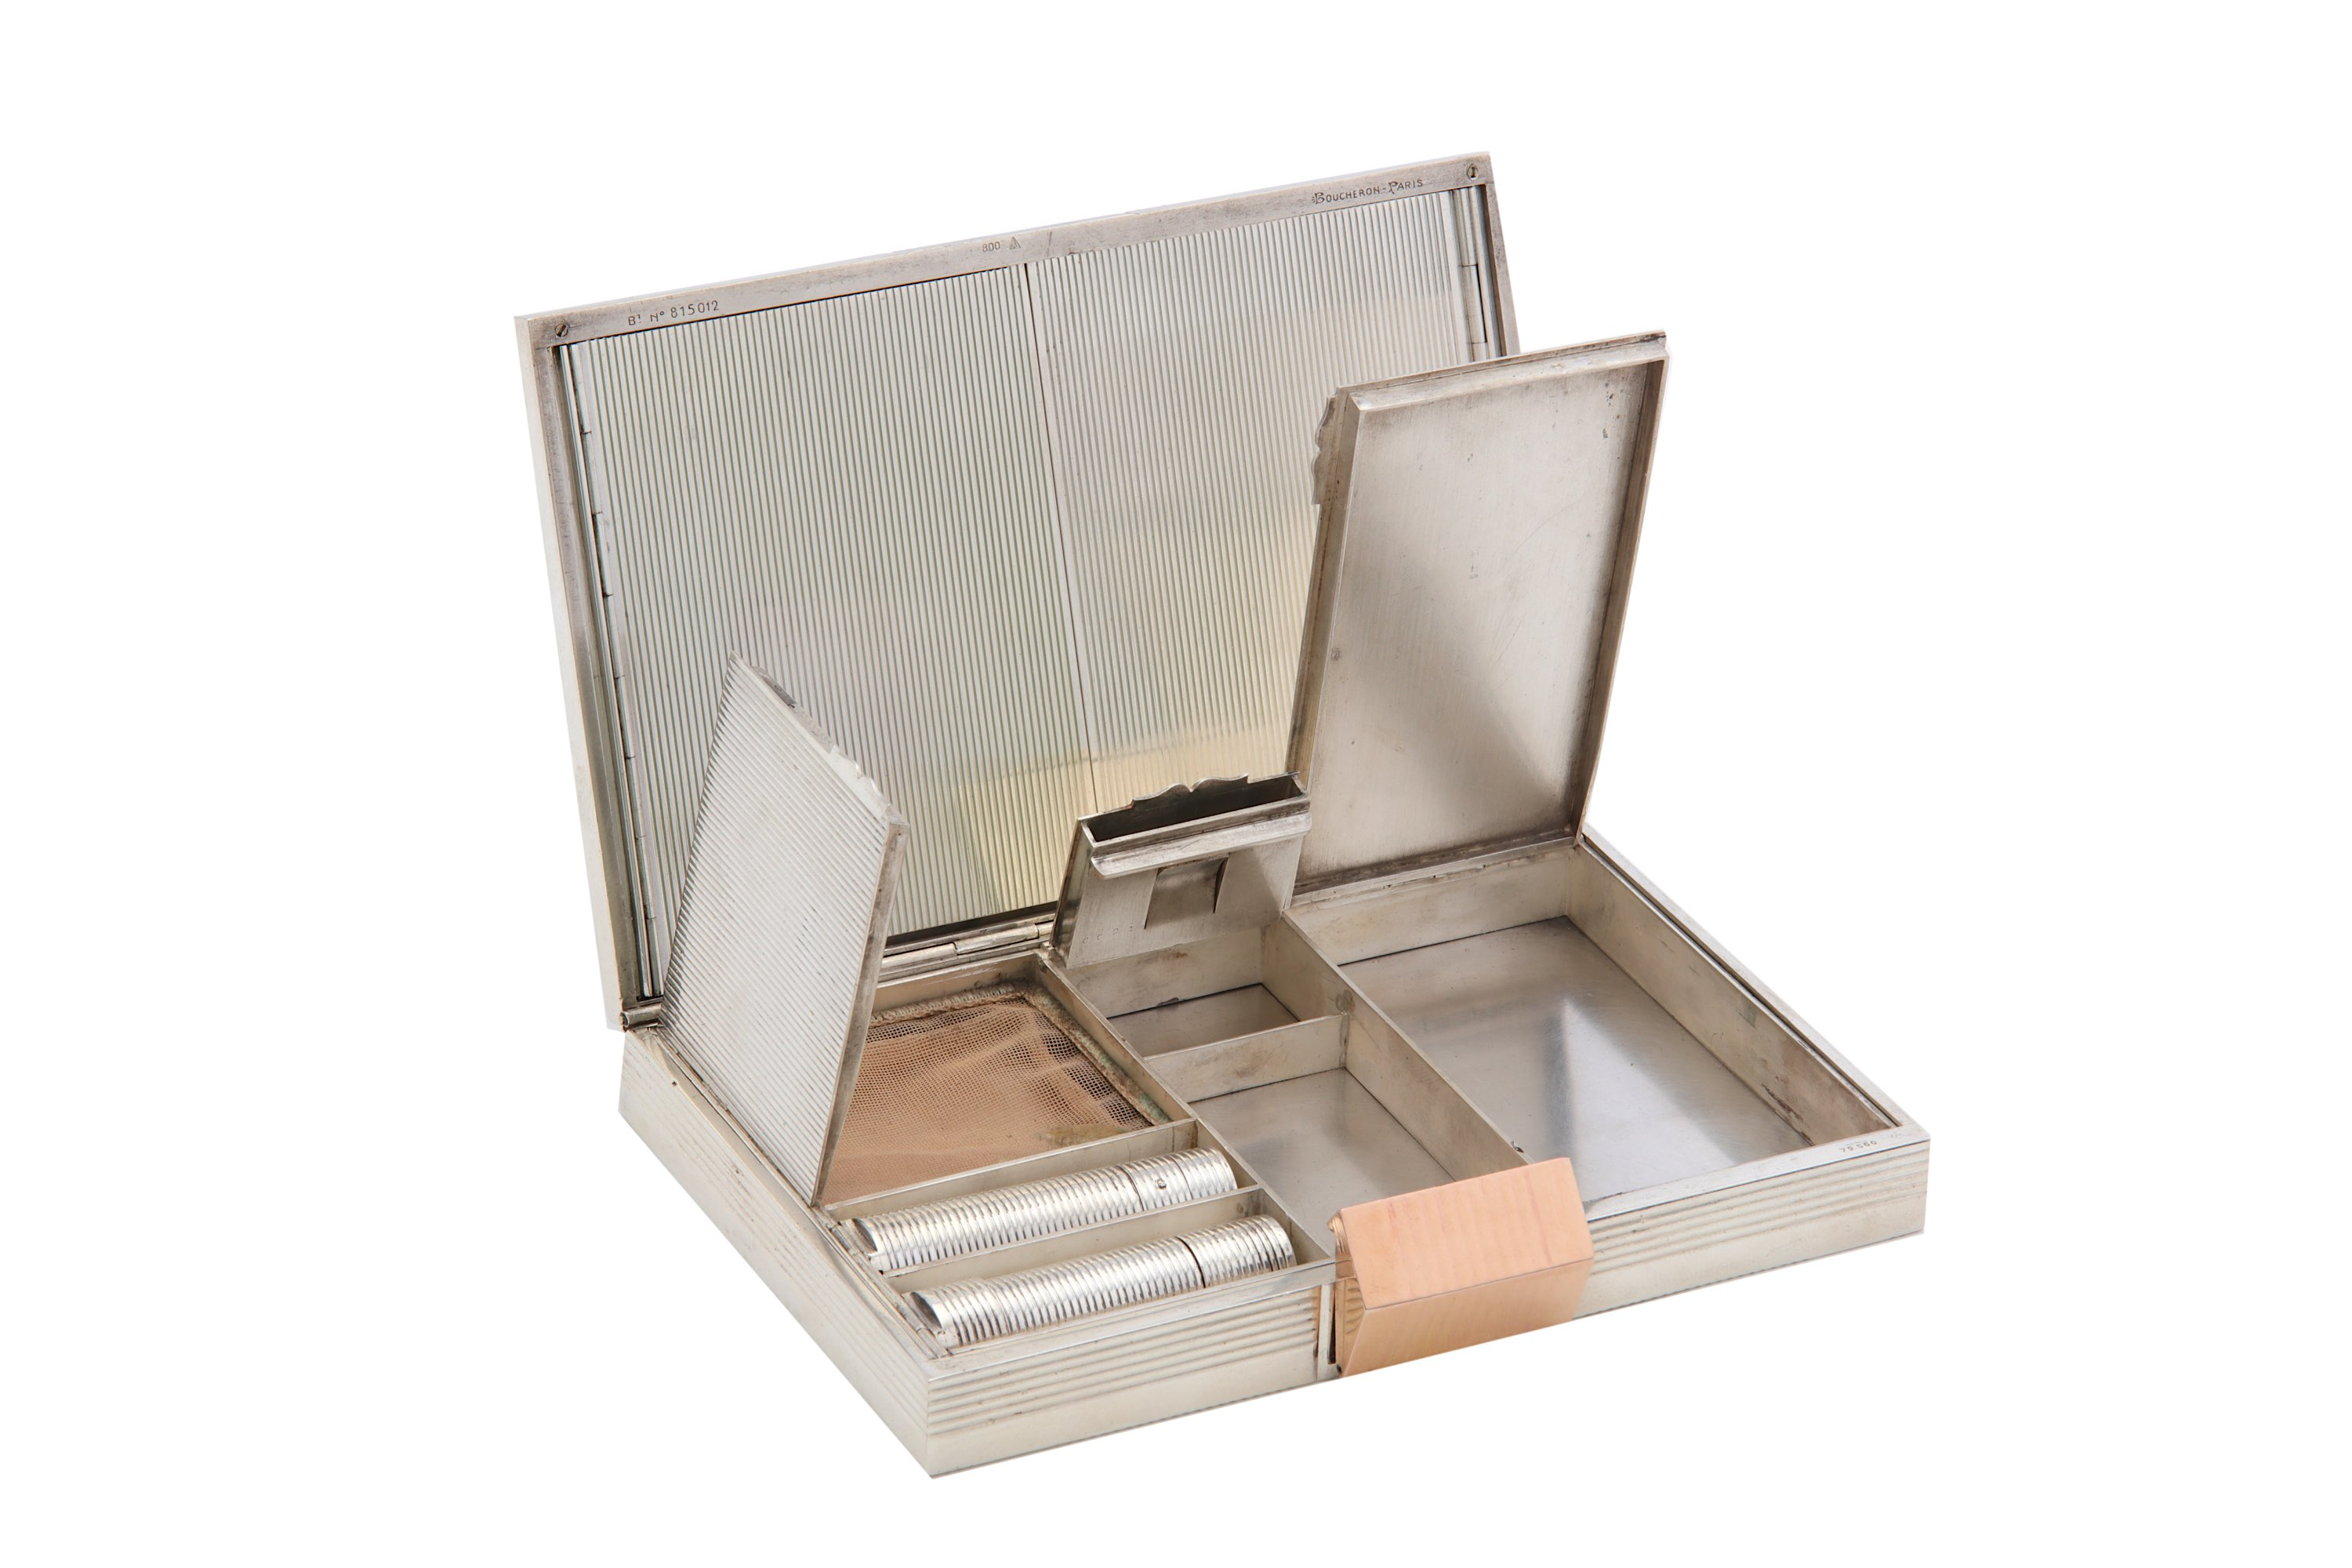 Lot 20 - A mid - 20th century French 800 standard silver and gold vanity case / minaudière, by Boucheron circ